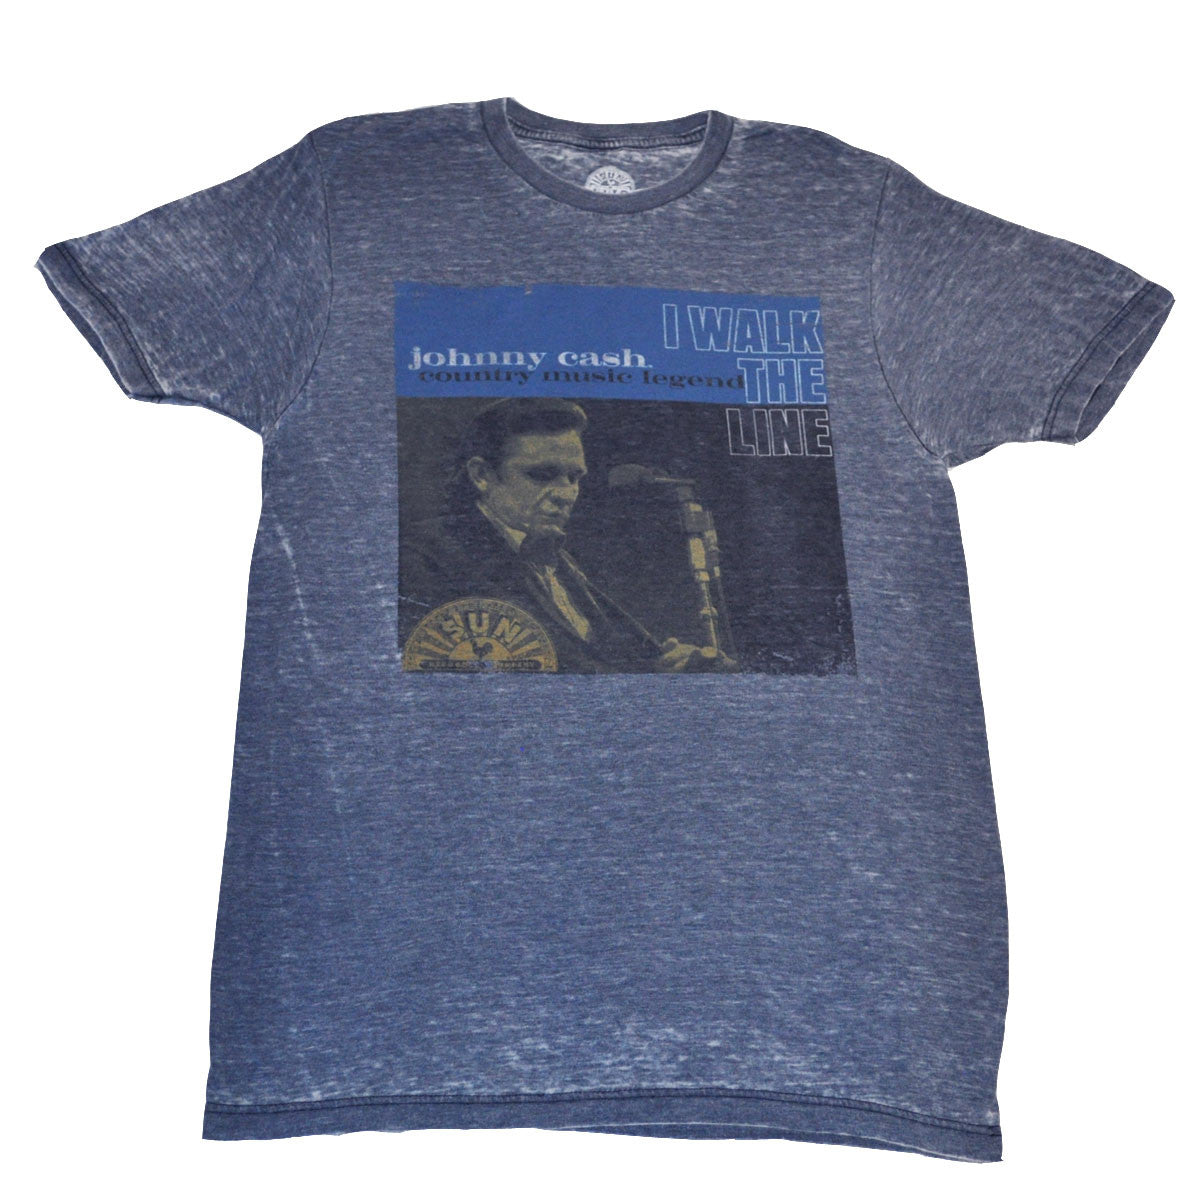 Johnny Cash - Walk The Line Men's Shirt, Heather Blue - The Giant Peach